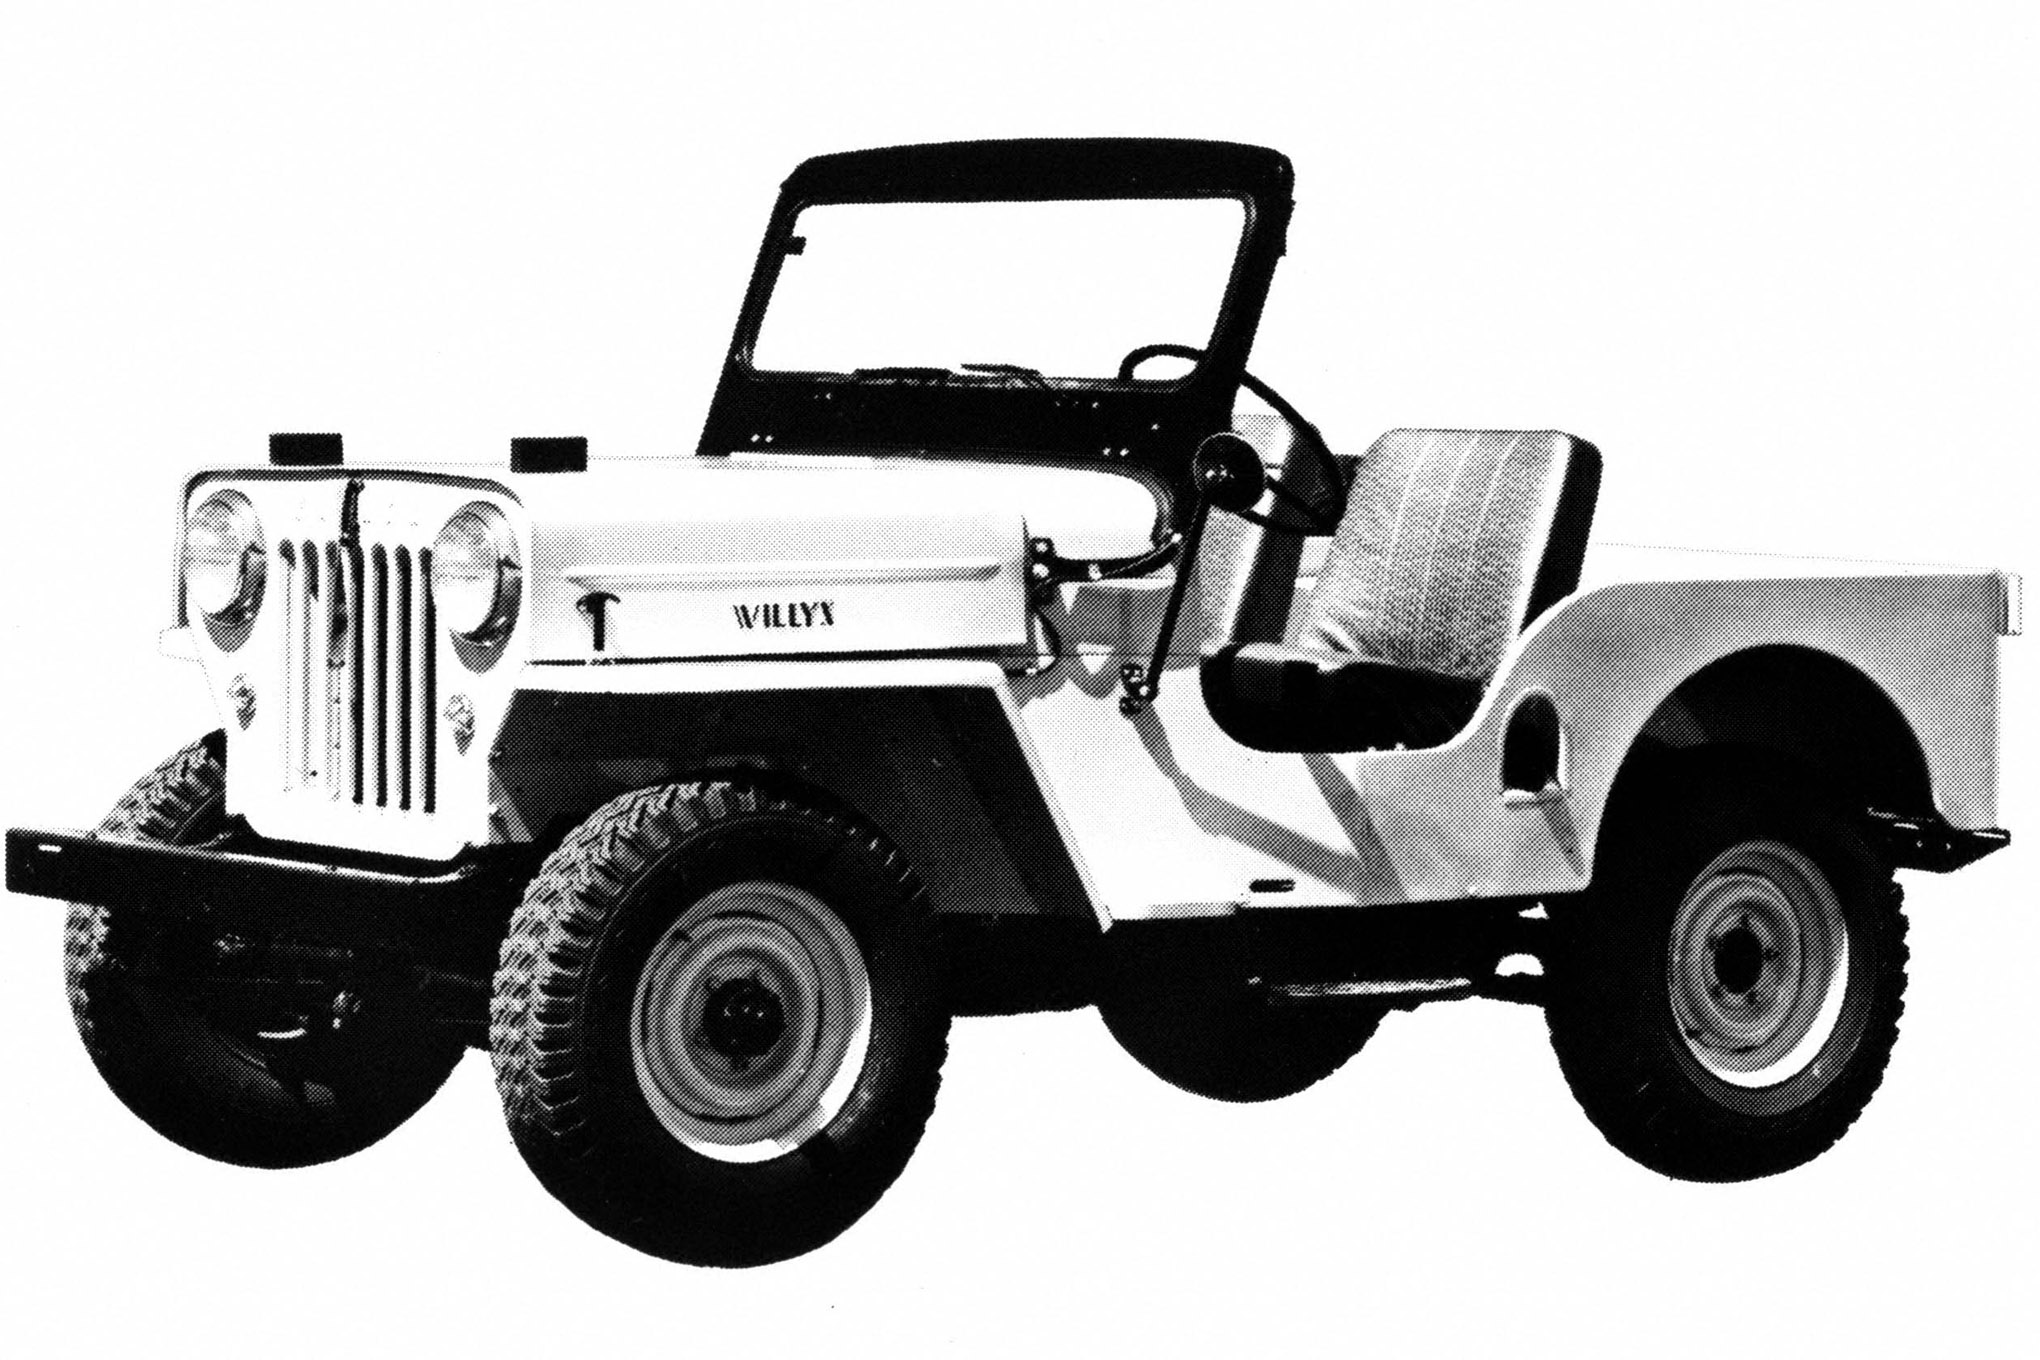 small resolution of 001 your jeep jeep willys cj3b 3b vintage flatfender high hood